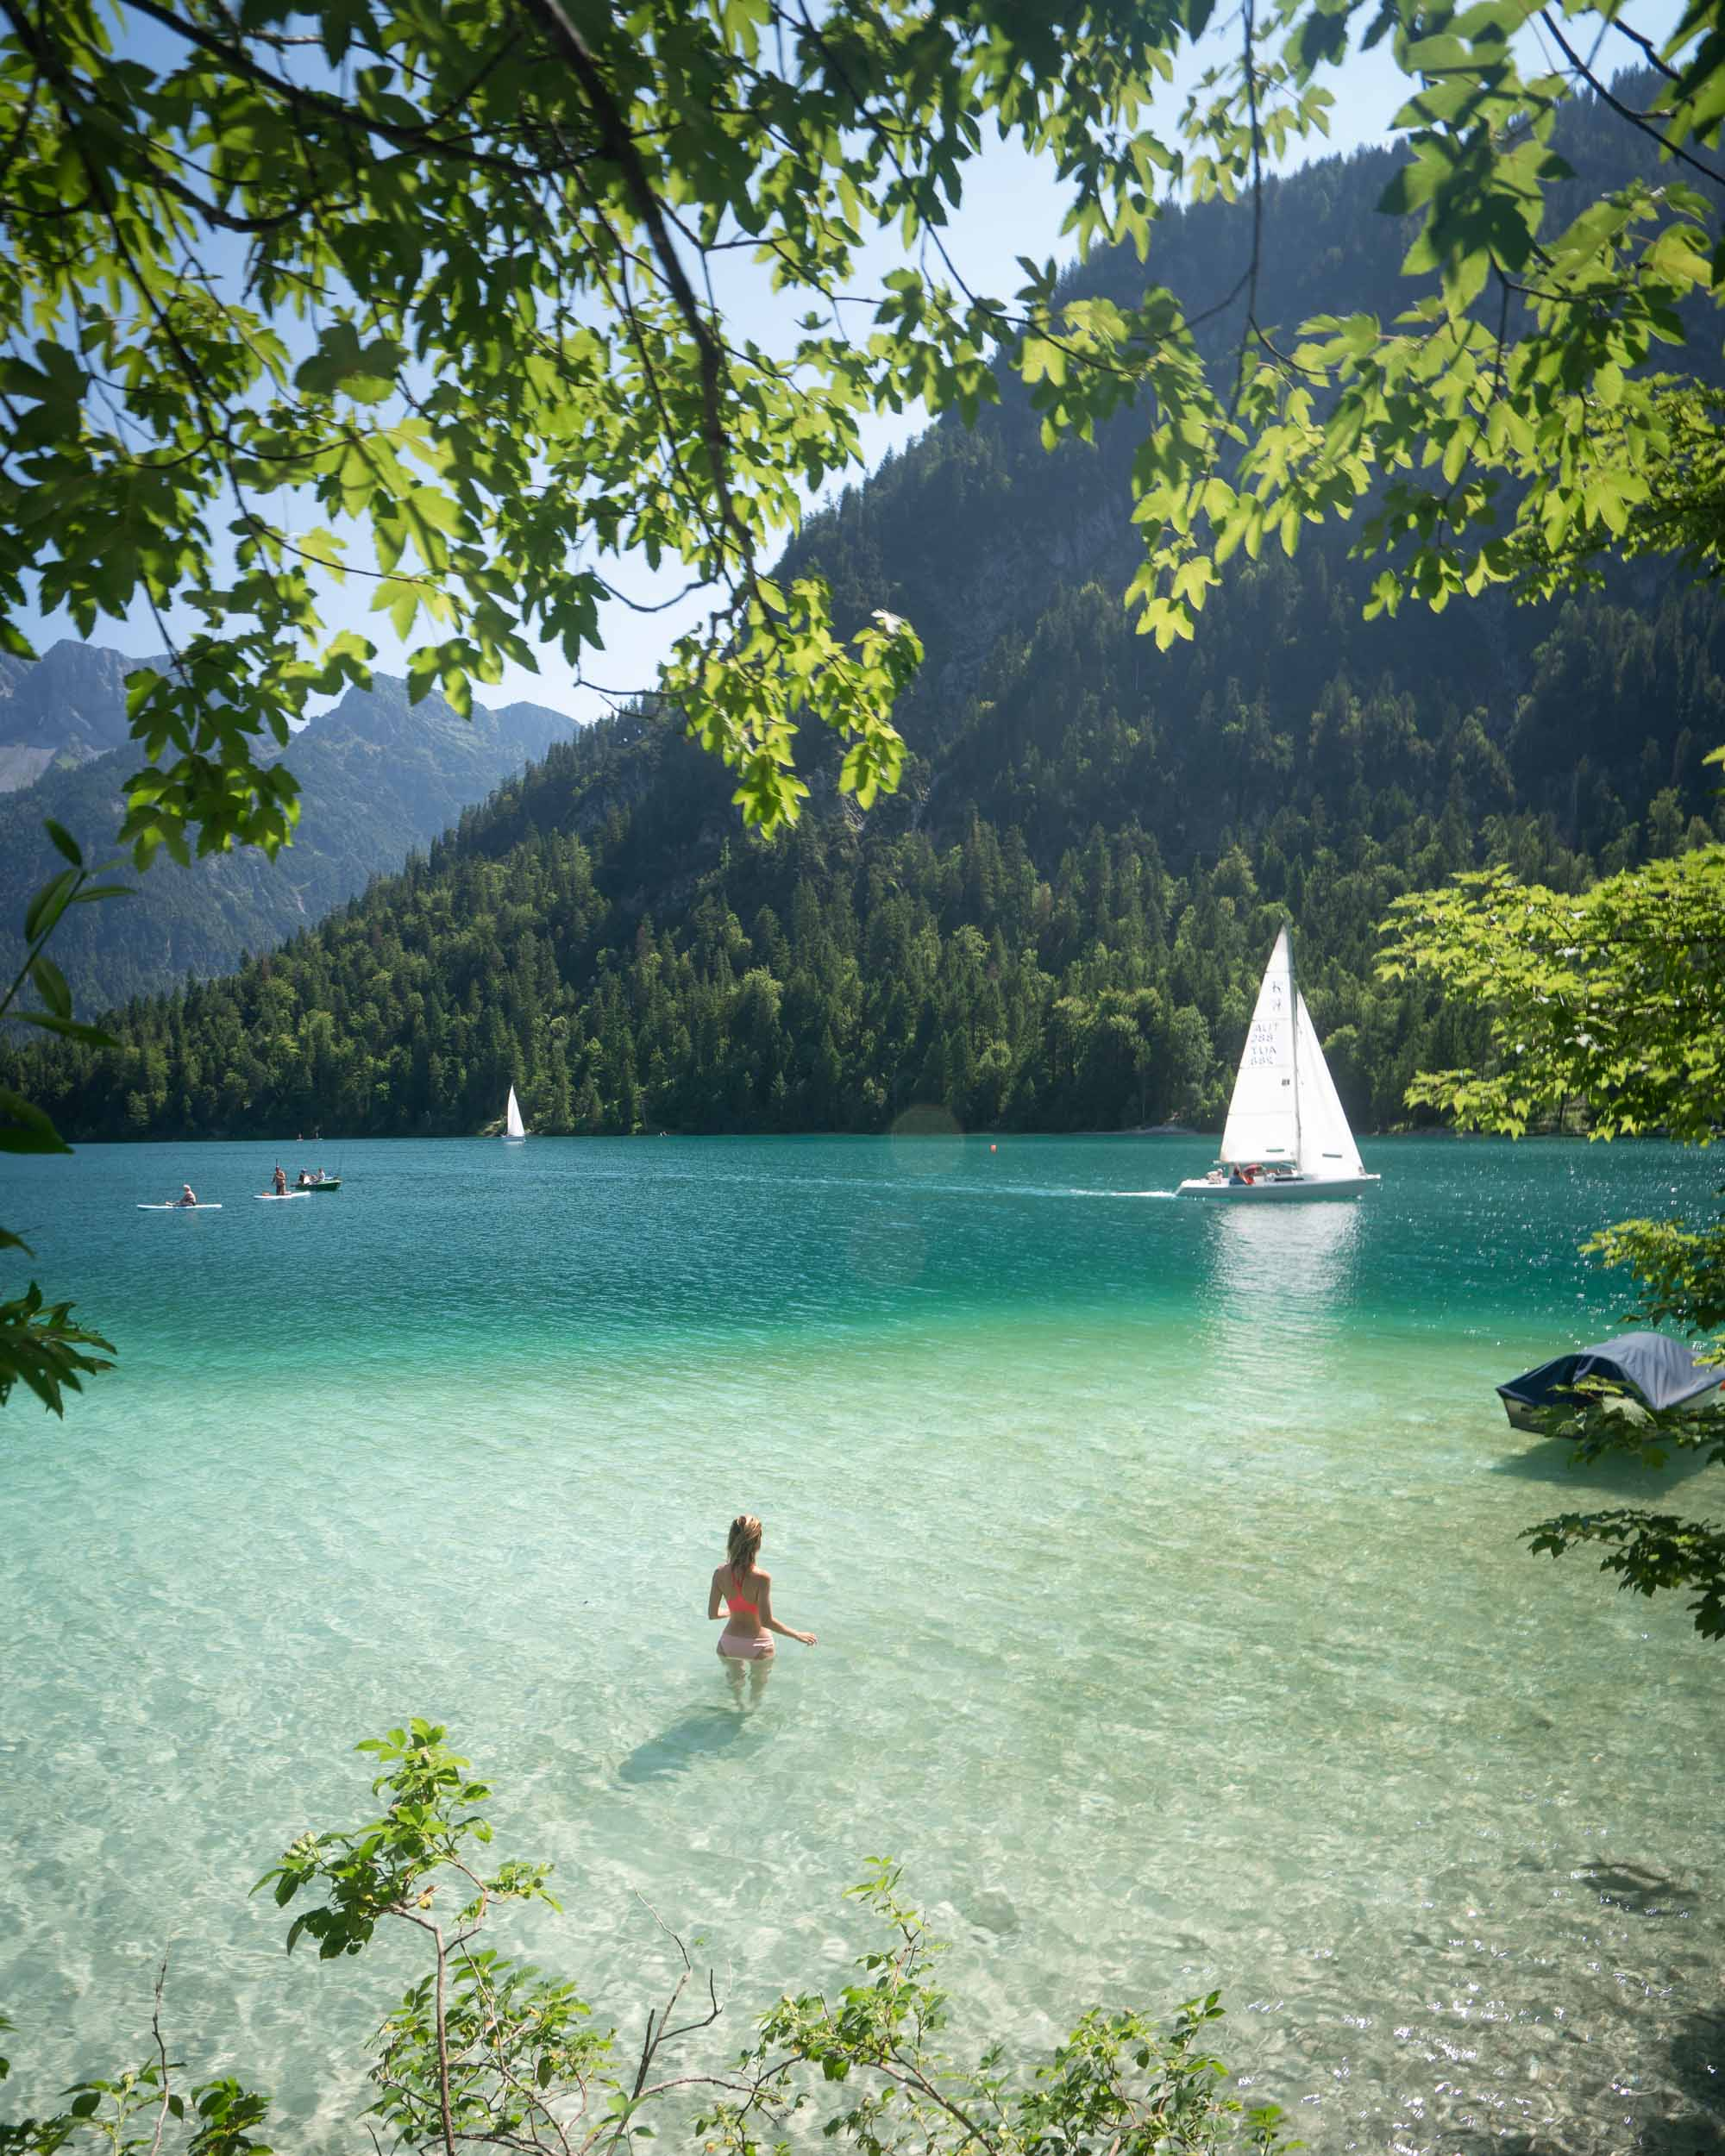 Plansee Lake in Austria